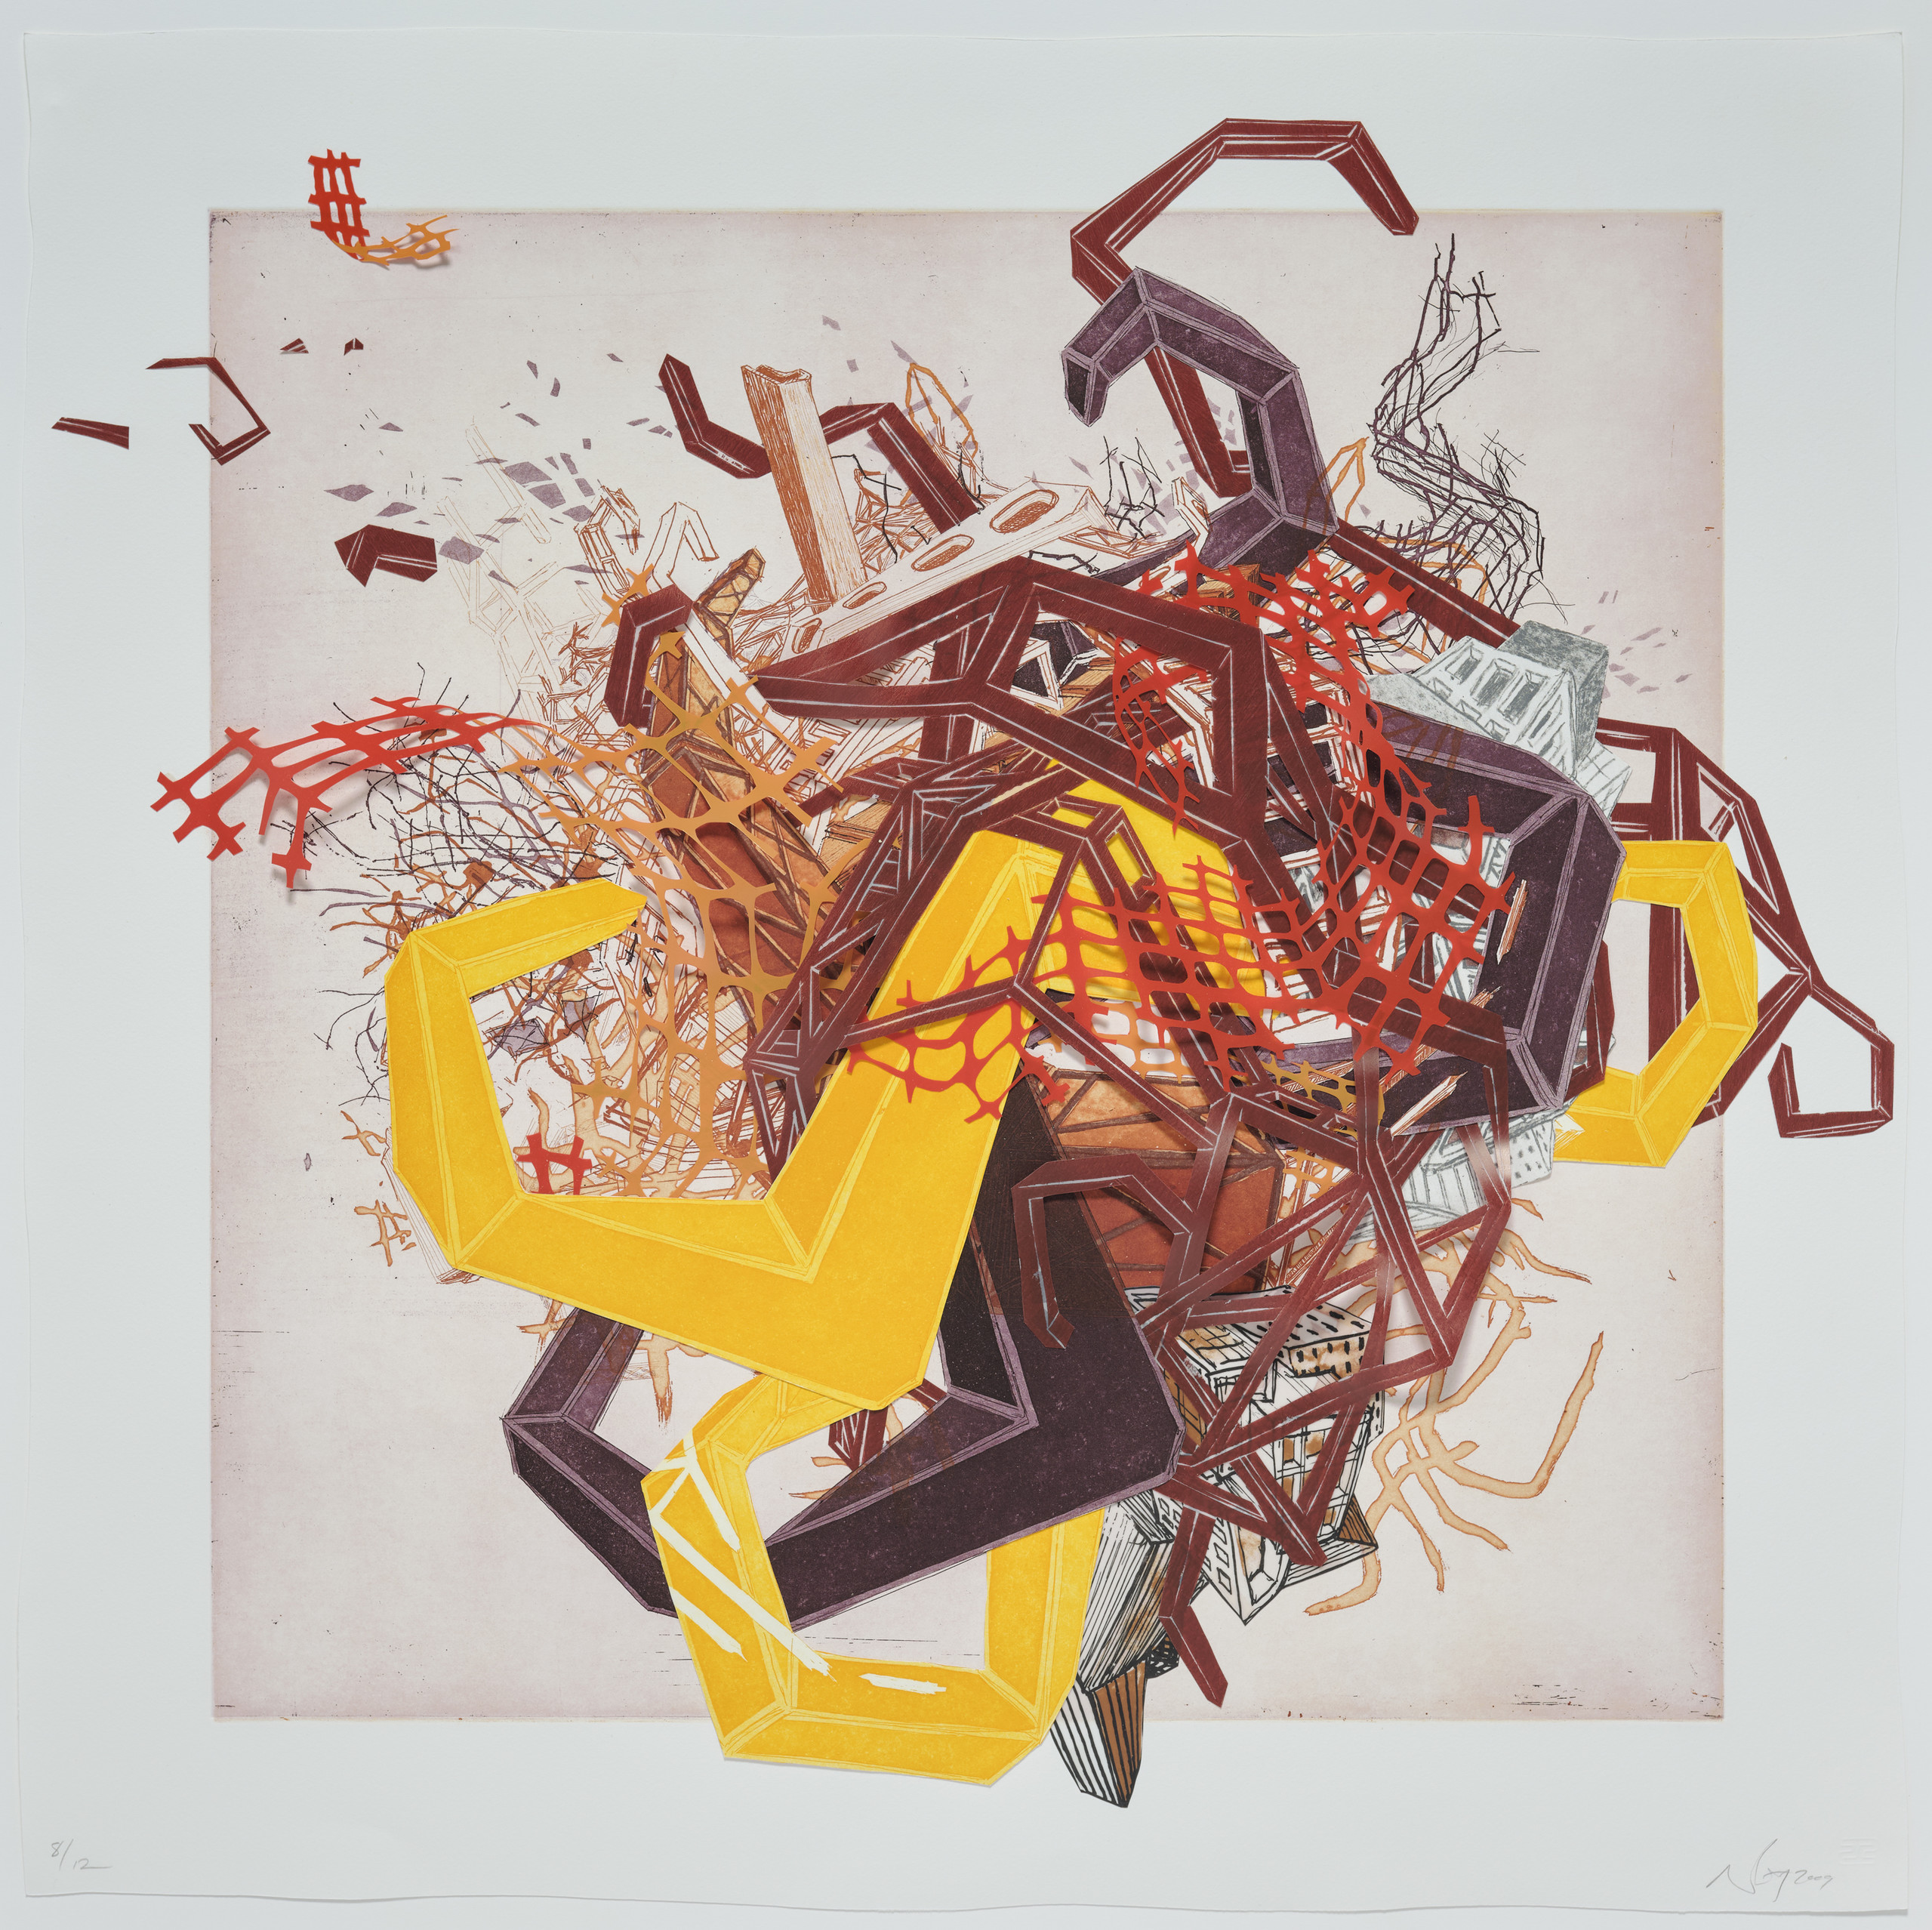 Mixed media work on paper depicts a tangle of colorful forms in the center of the paper. Some forms are printed abstracted architectural structures and pipes. Other forms are made out of mylar and represent hoses and plastic fencing.